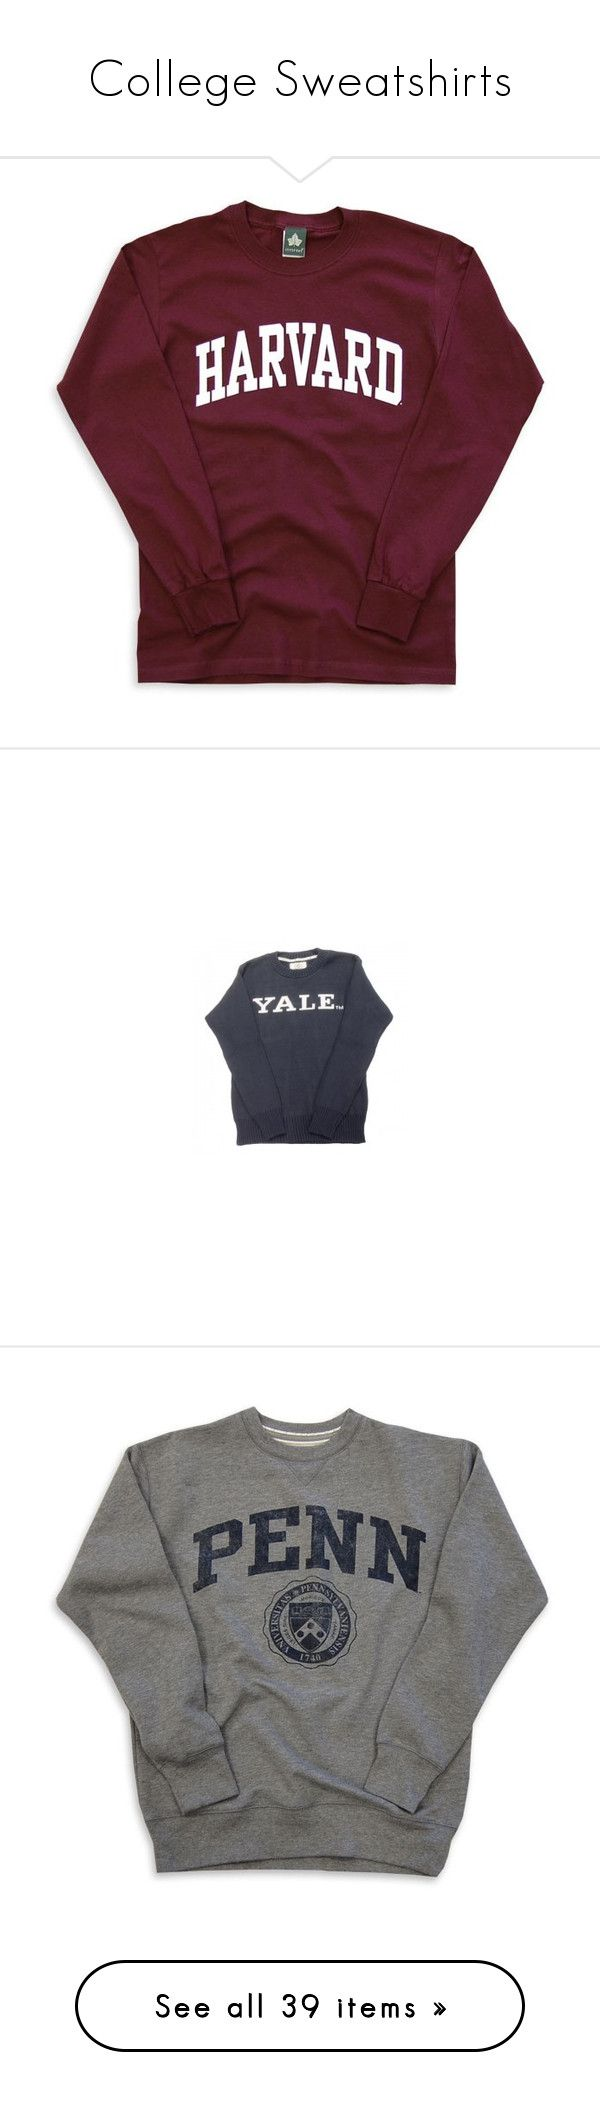 """""""College Sweatshirts"""" by lilybear115 ❤ liked on Polyvore featuring tops, hoodies, sweatshirts, shirts, sweaters, long-sleeve shirt, long sleeve cotton tops, maroon top, purple top and maroon shirt"""